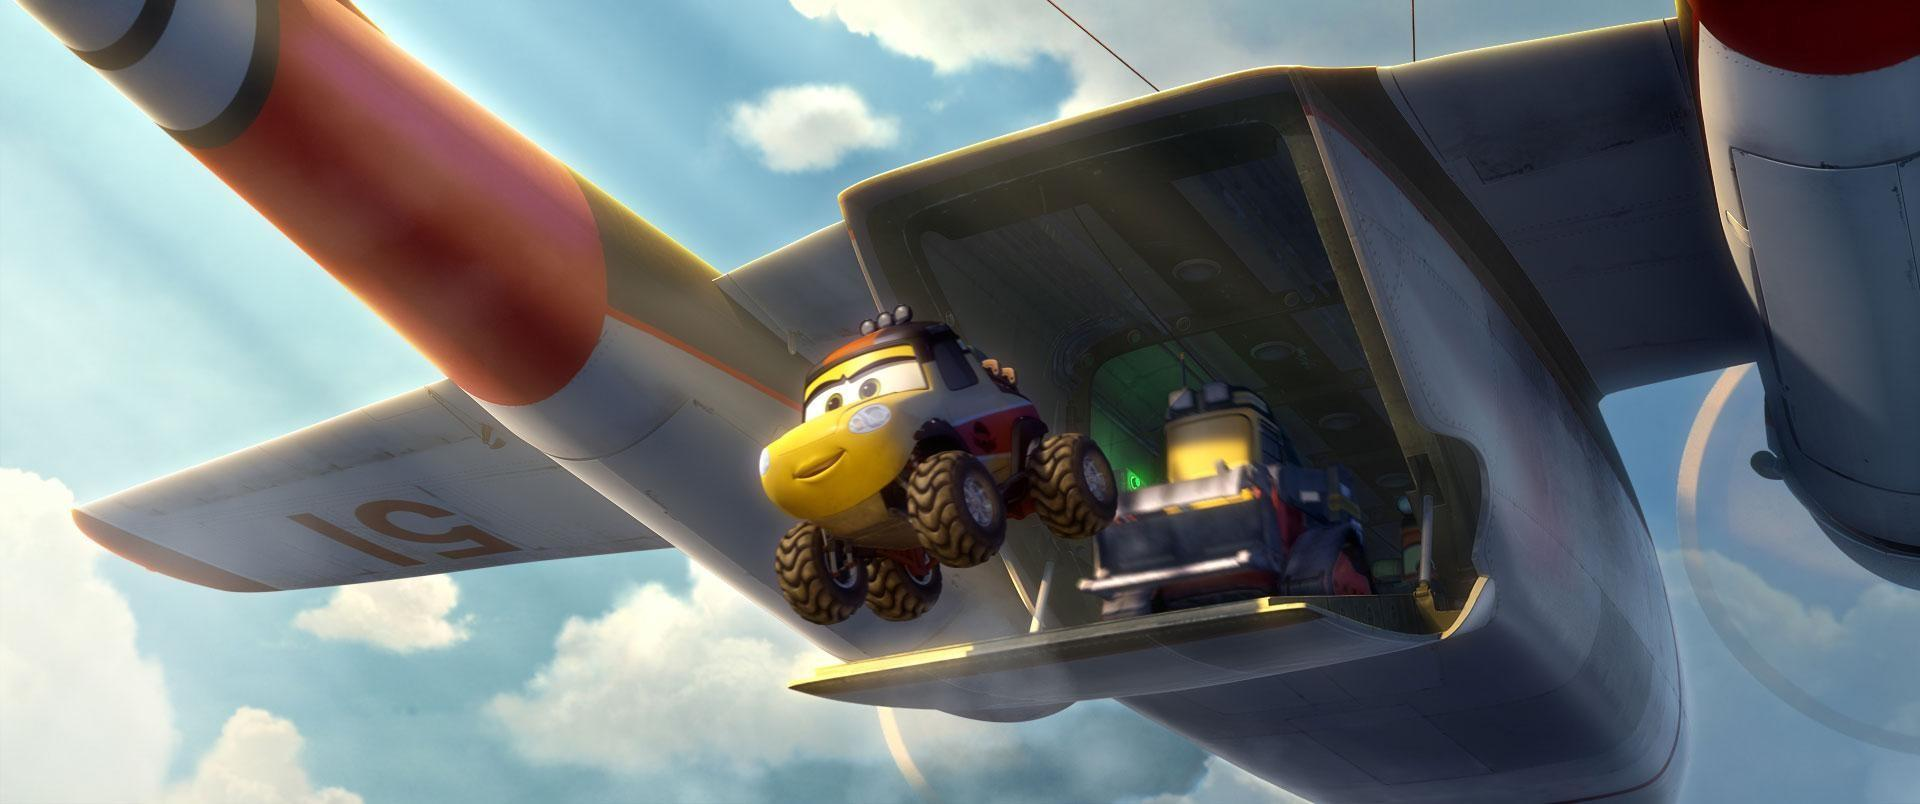 Disney's Planes: Fire and Rescue